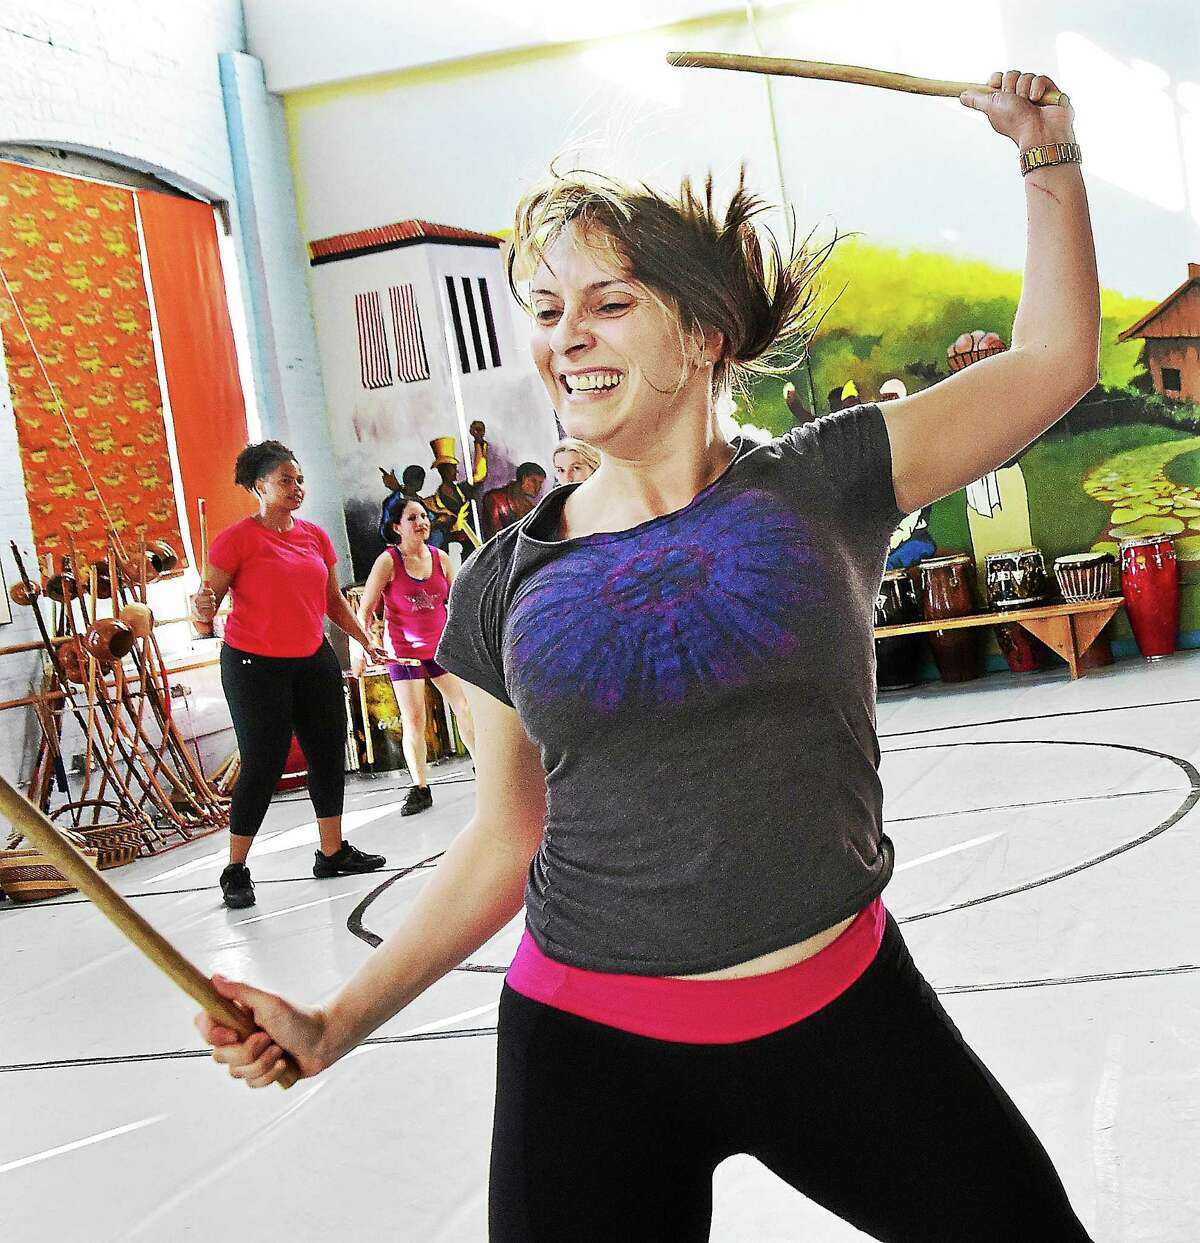 Thelma Ladeira leads members of the samba class, Kristina Douglass, of New Haven and Lina Klaus, of North Haven in the samba class in the maculele or stick dance, a form of African-Brazilian dance, Thursday, June 25, 2015, at Connecticut Capoeira Dance Center in New Haven.